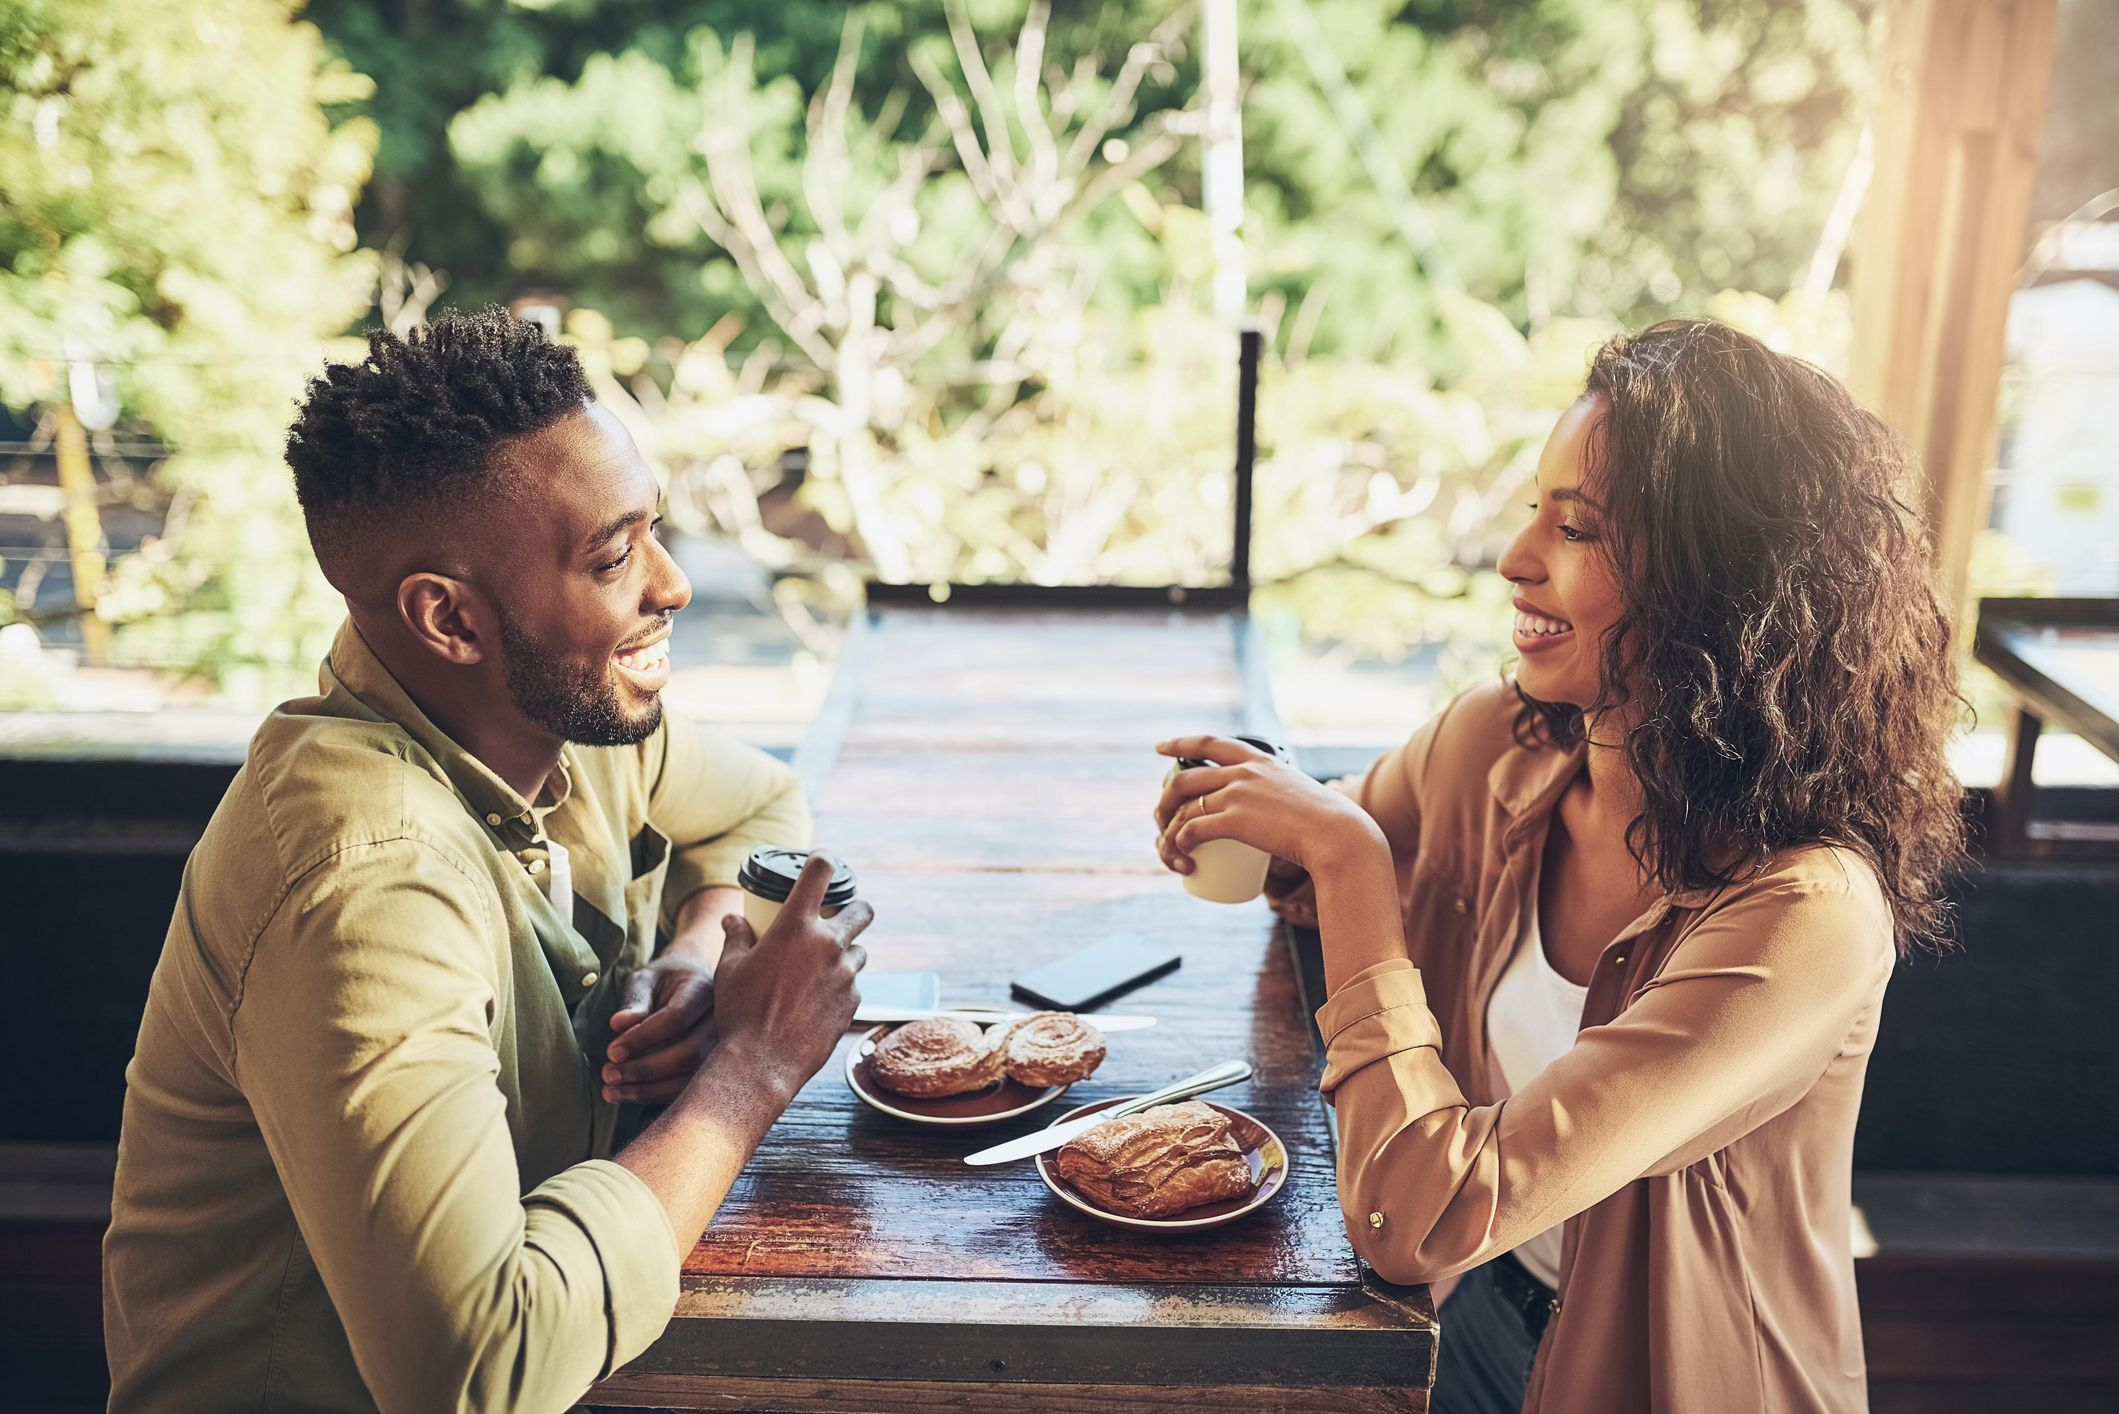 Women Are Sharing the Best Things Men Can Do on the First Date